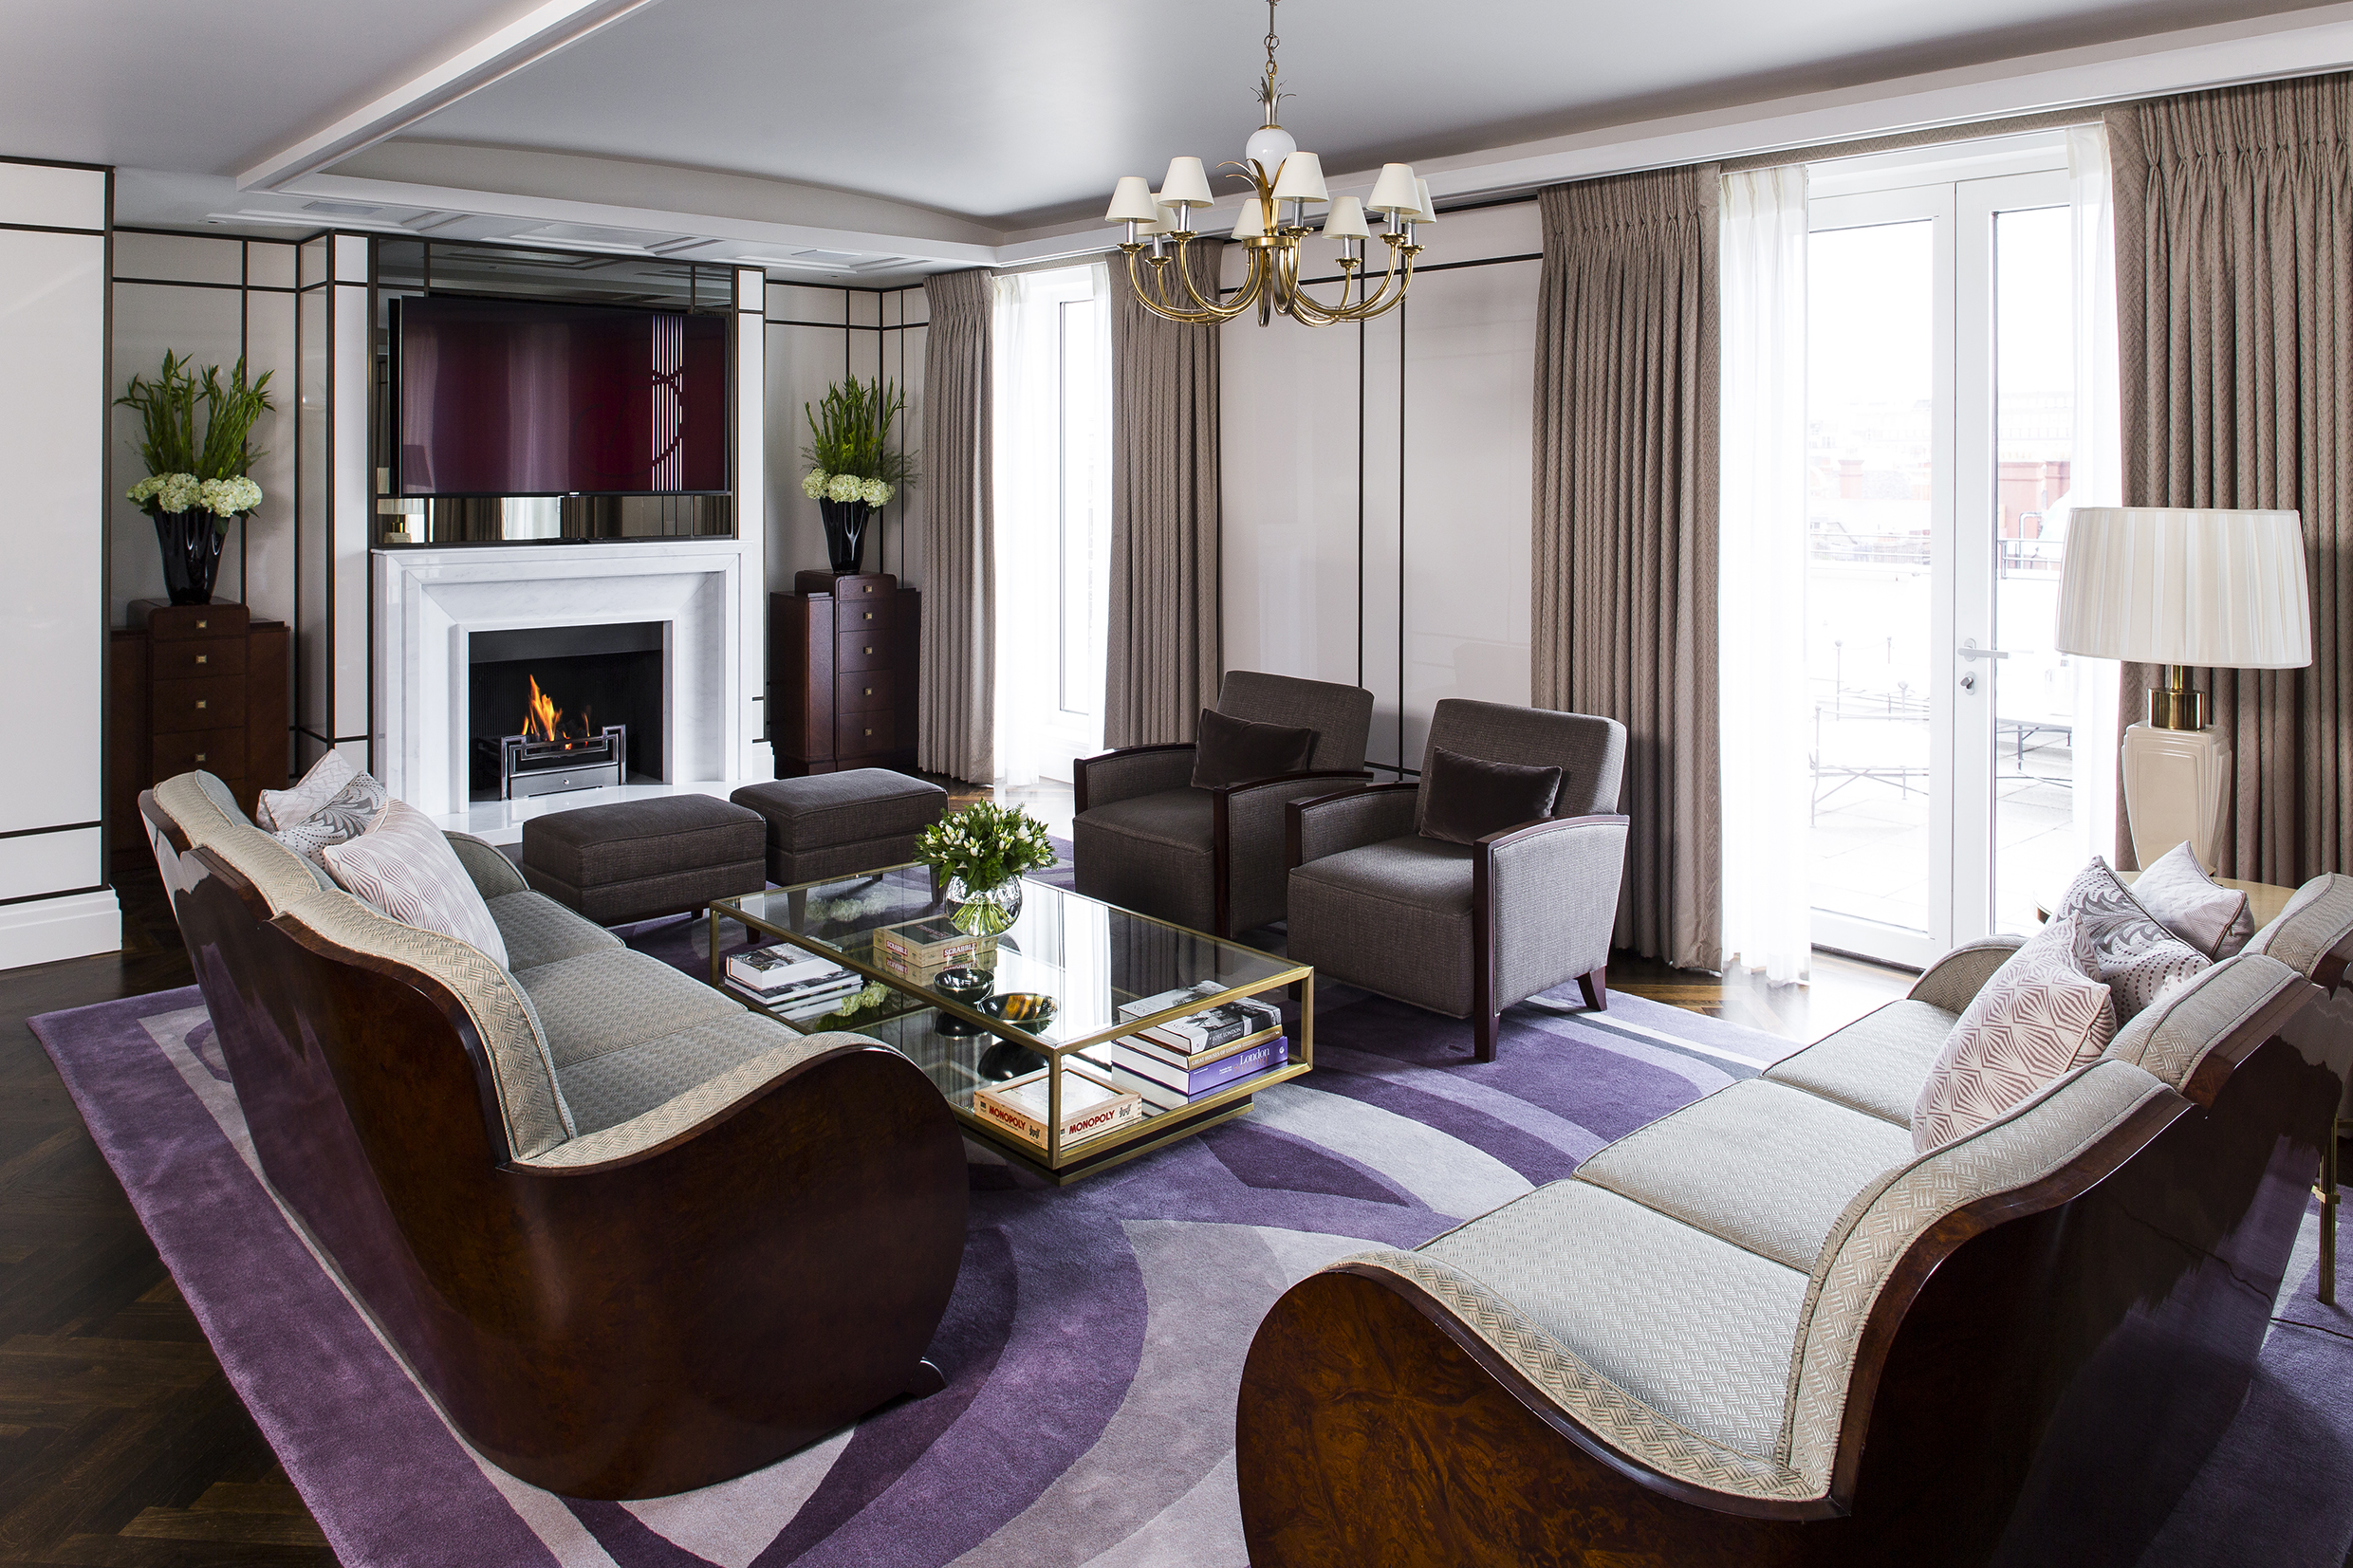 The glamorous Roosevelt suite, which evokes the great Transatlantic liners of the 1920s and 1930s